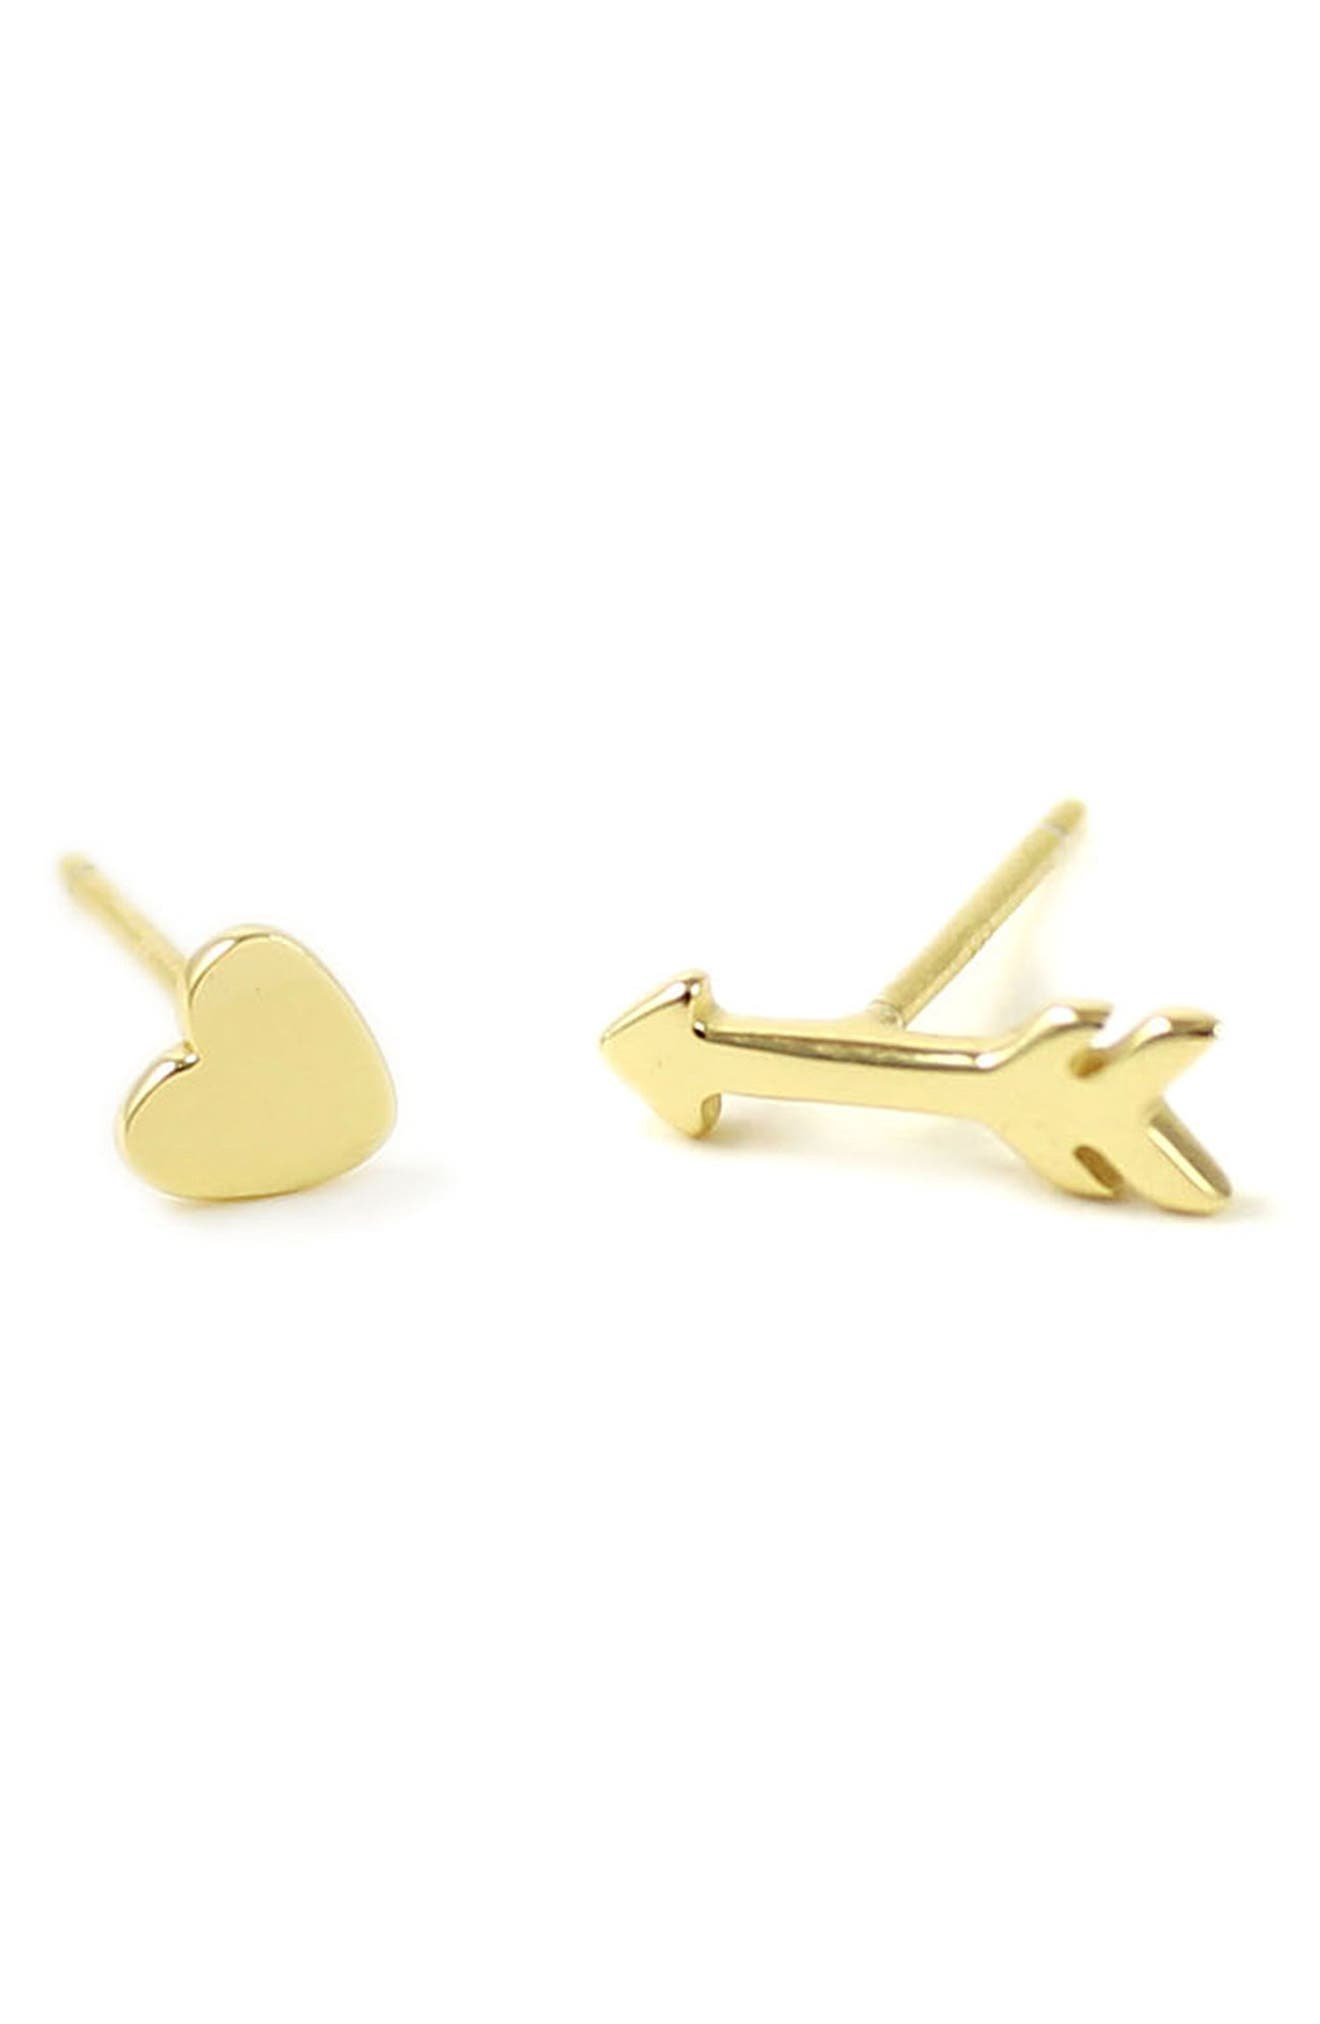 Heart & Arrow Stud Earrings,                         Main,                         color, GOLD